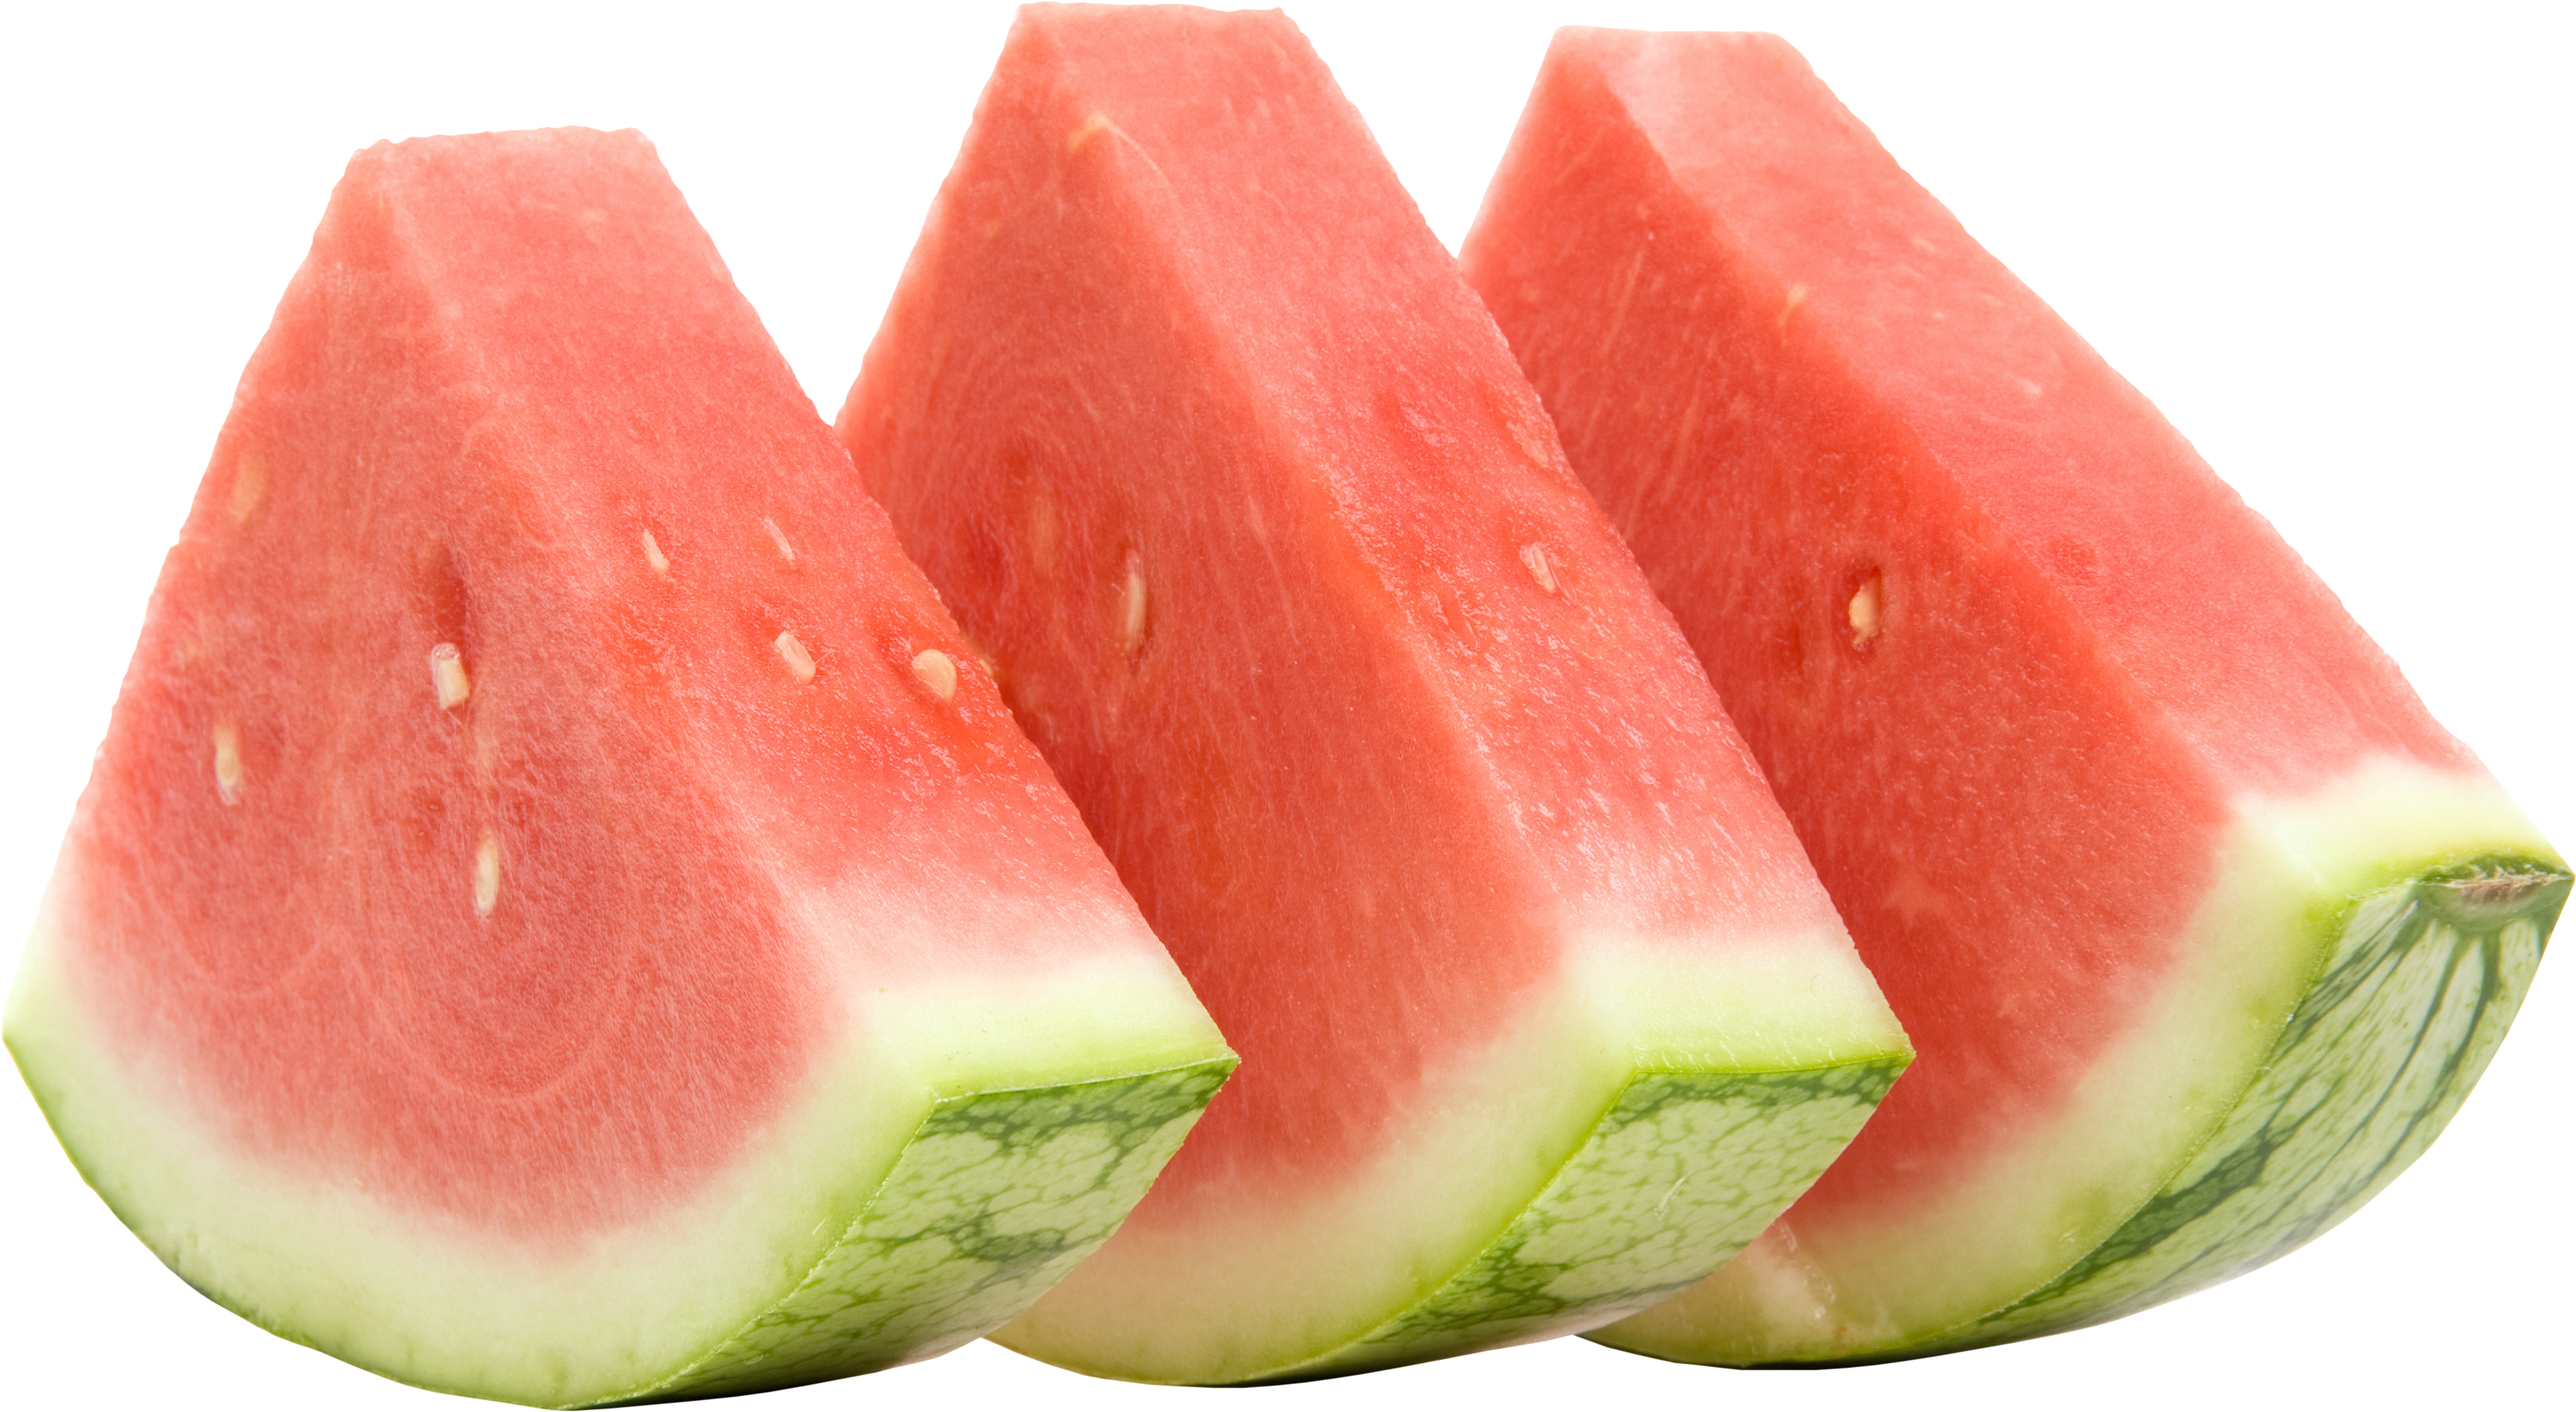 Watermelon png images. Free download image